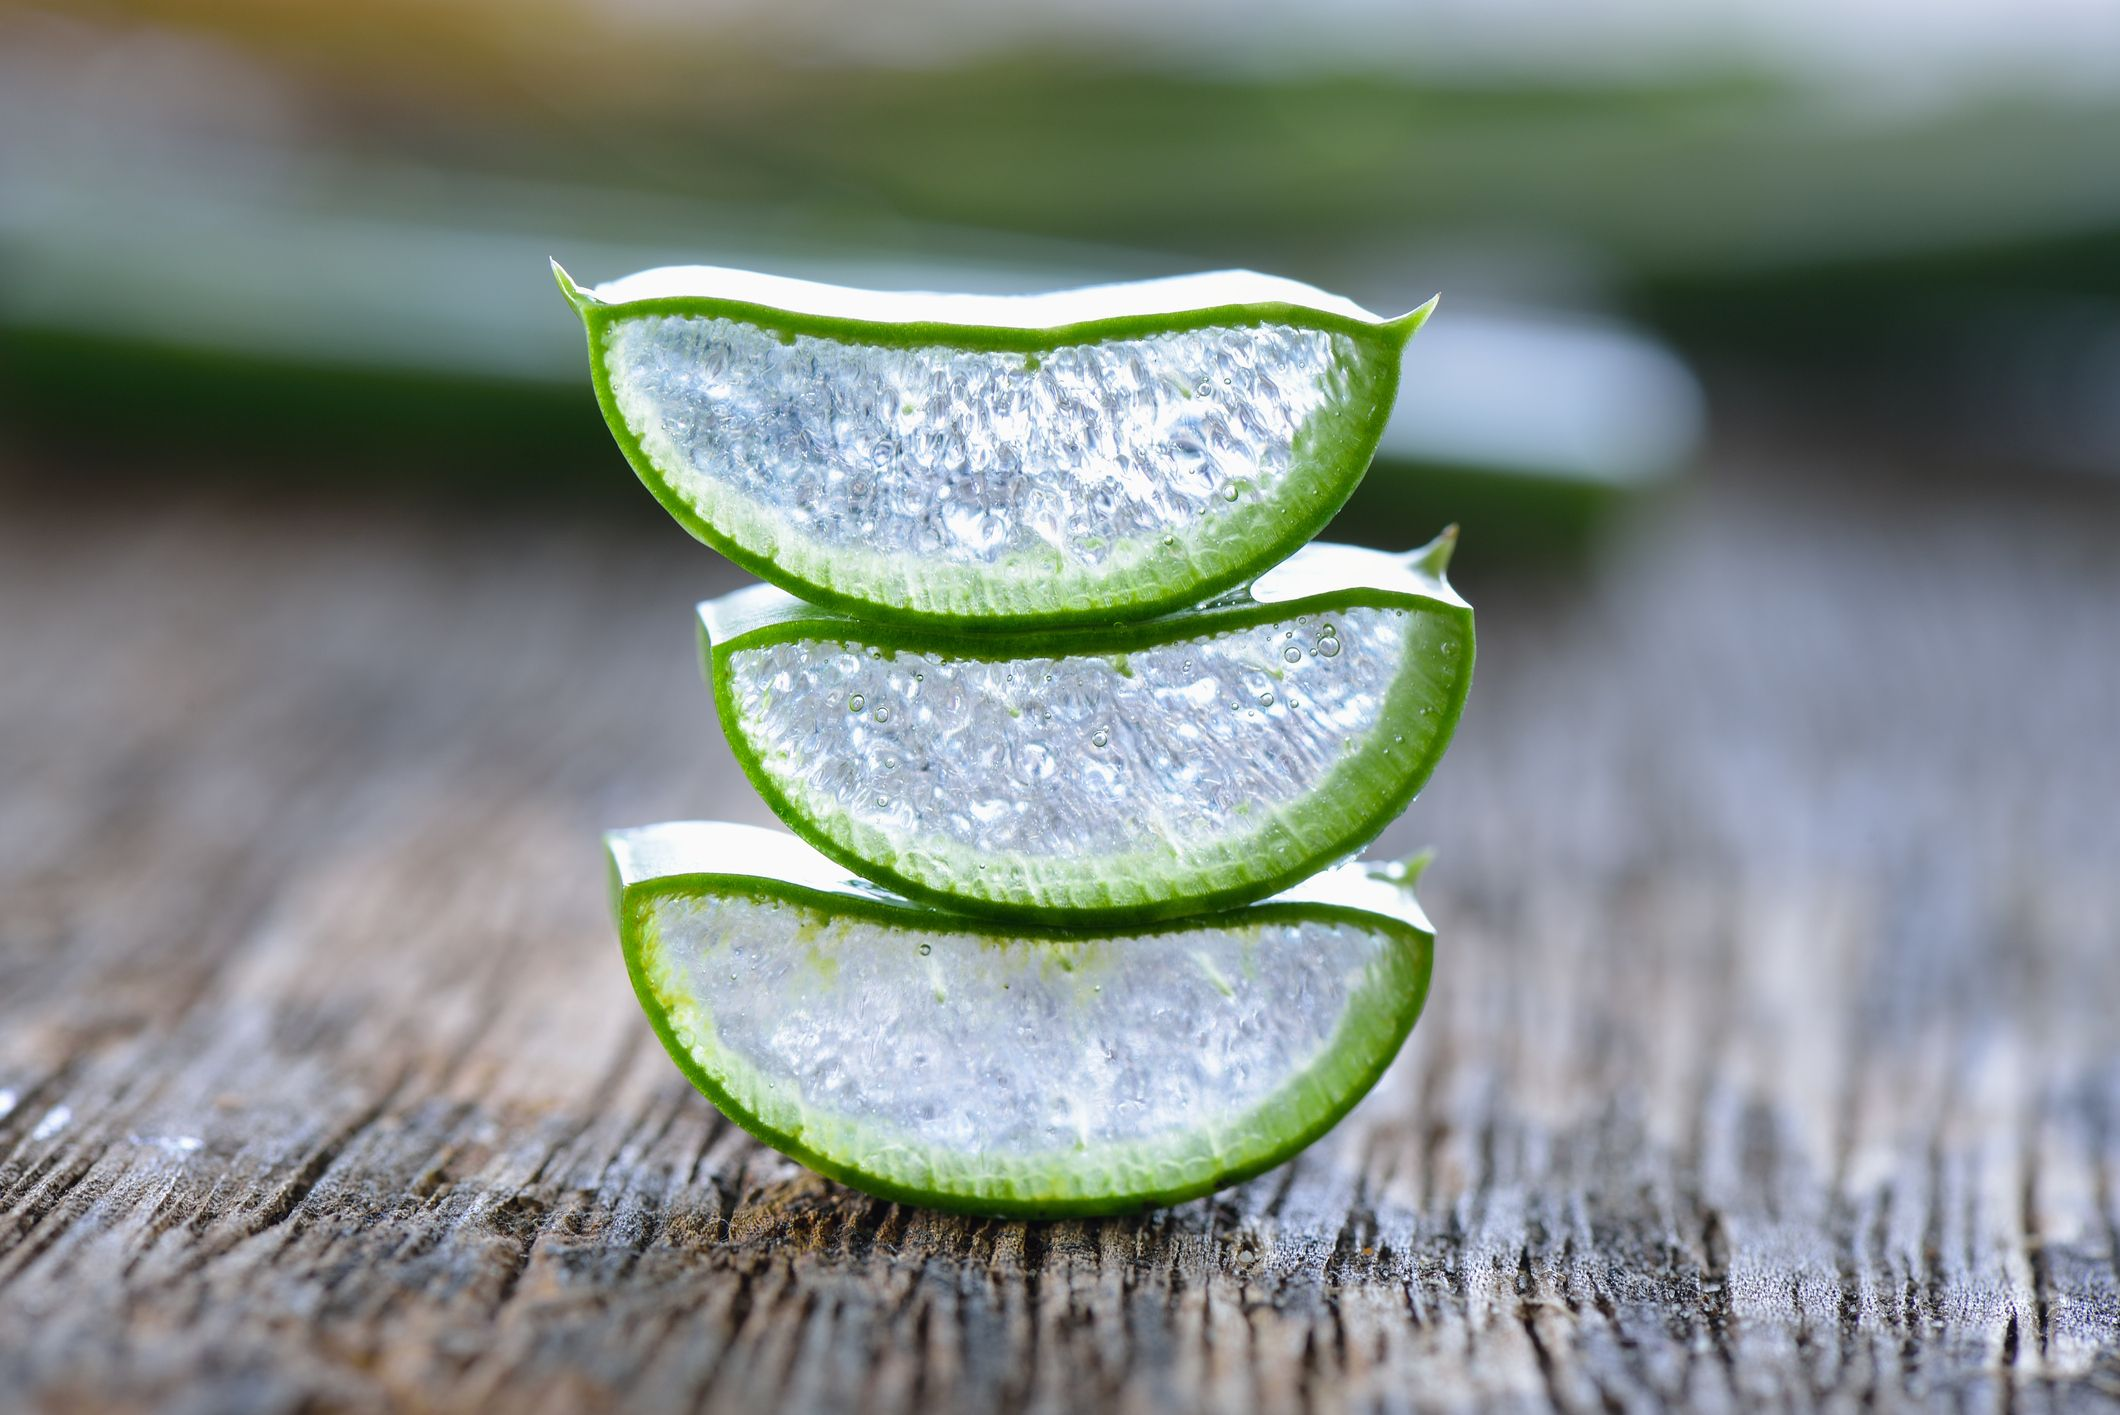 Aloe Vera Benefits: 14 Health and Beauty Uses for the Super Succulent